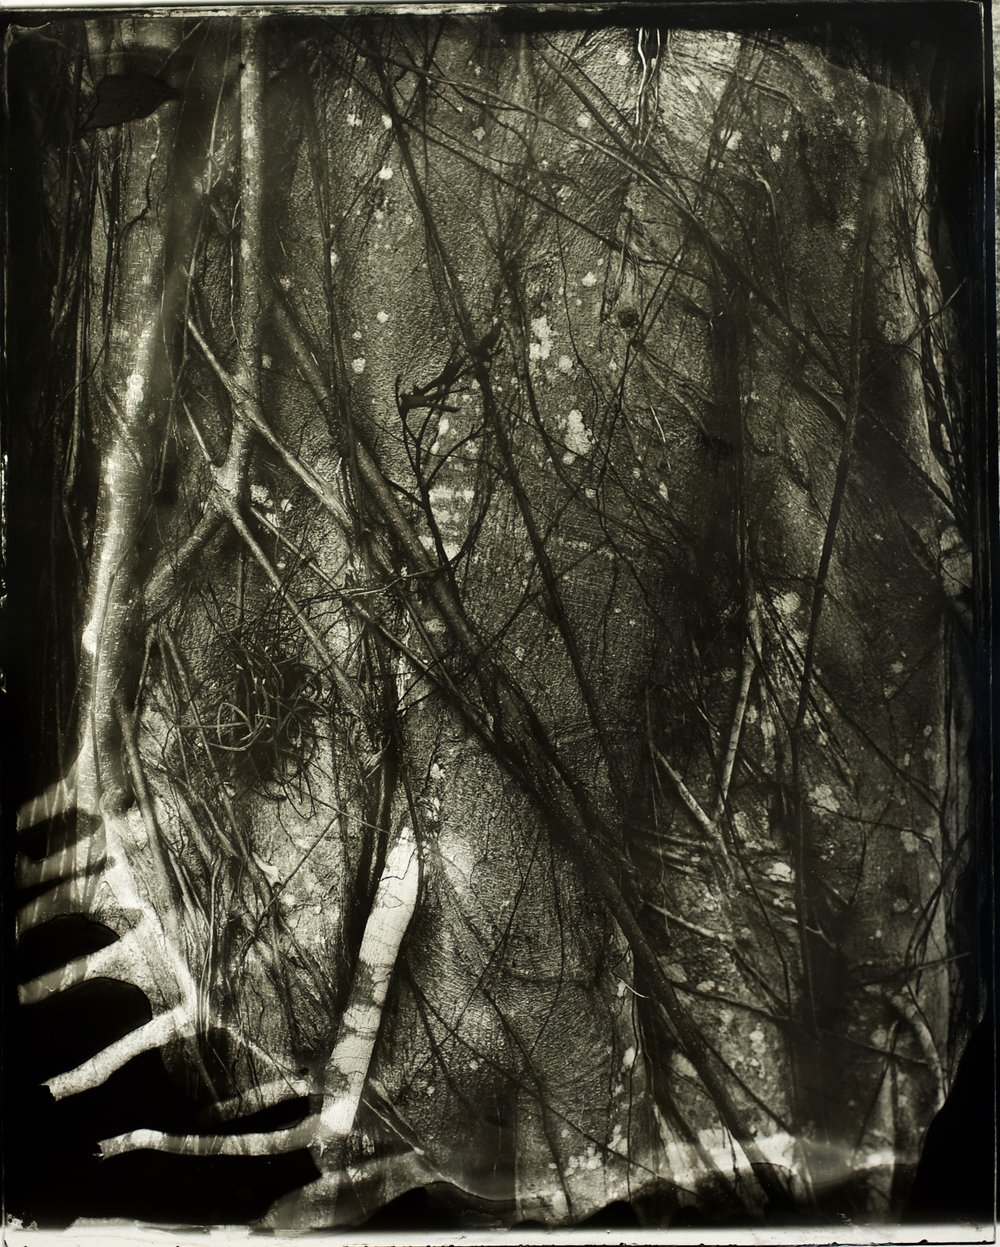 Implicāre,  30 in. x 37 in., collodian negative hand printed on Fomatone paper, 2018. #2018-7.(Slighly lower contrast than #6.).jpg